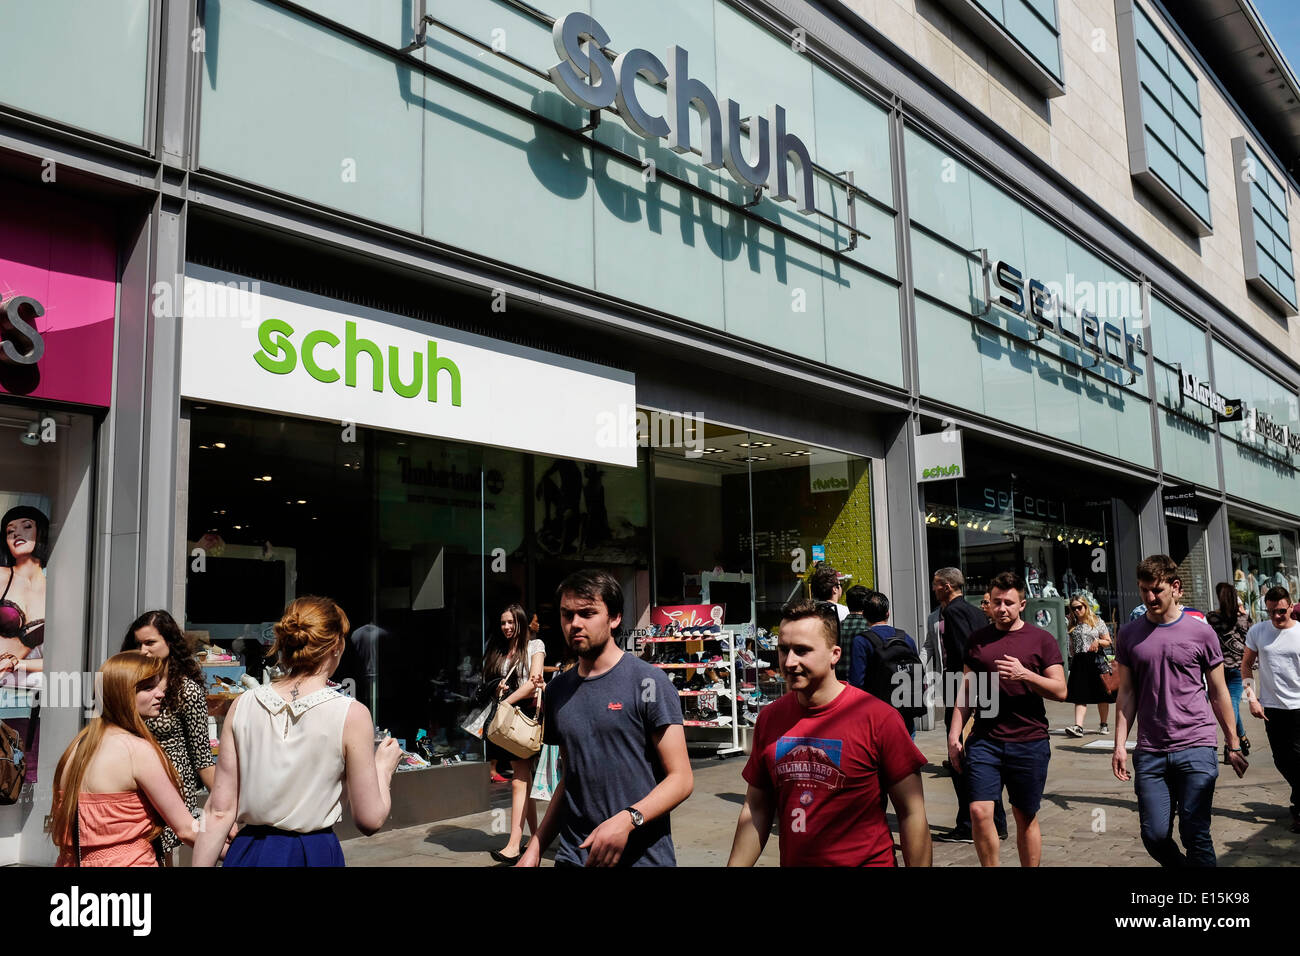 Schuh store front in Manchester city centre UK - Stock Image